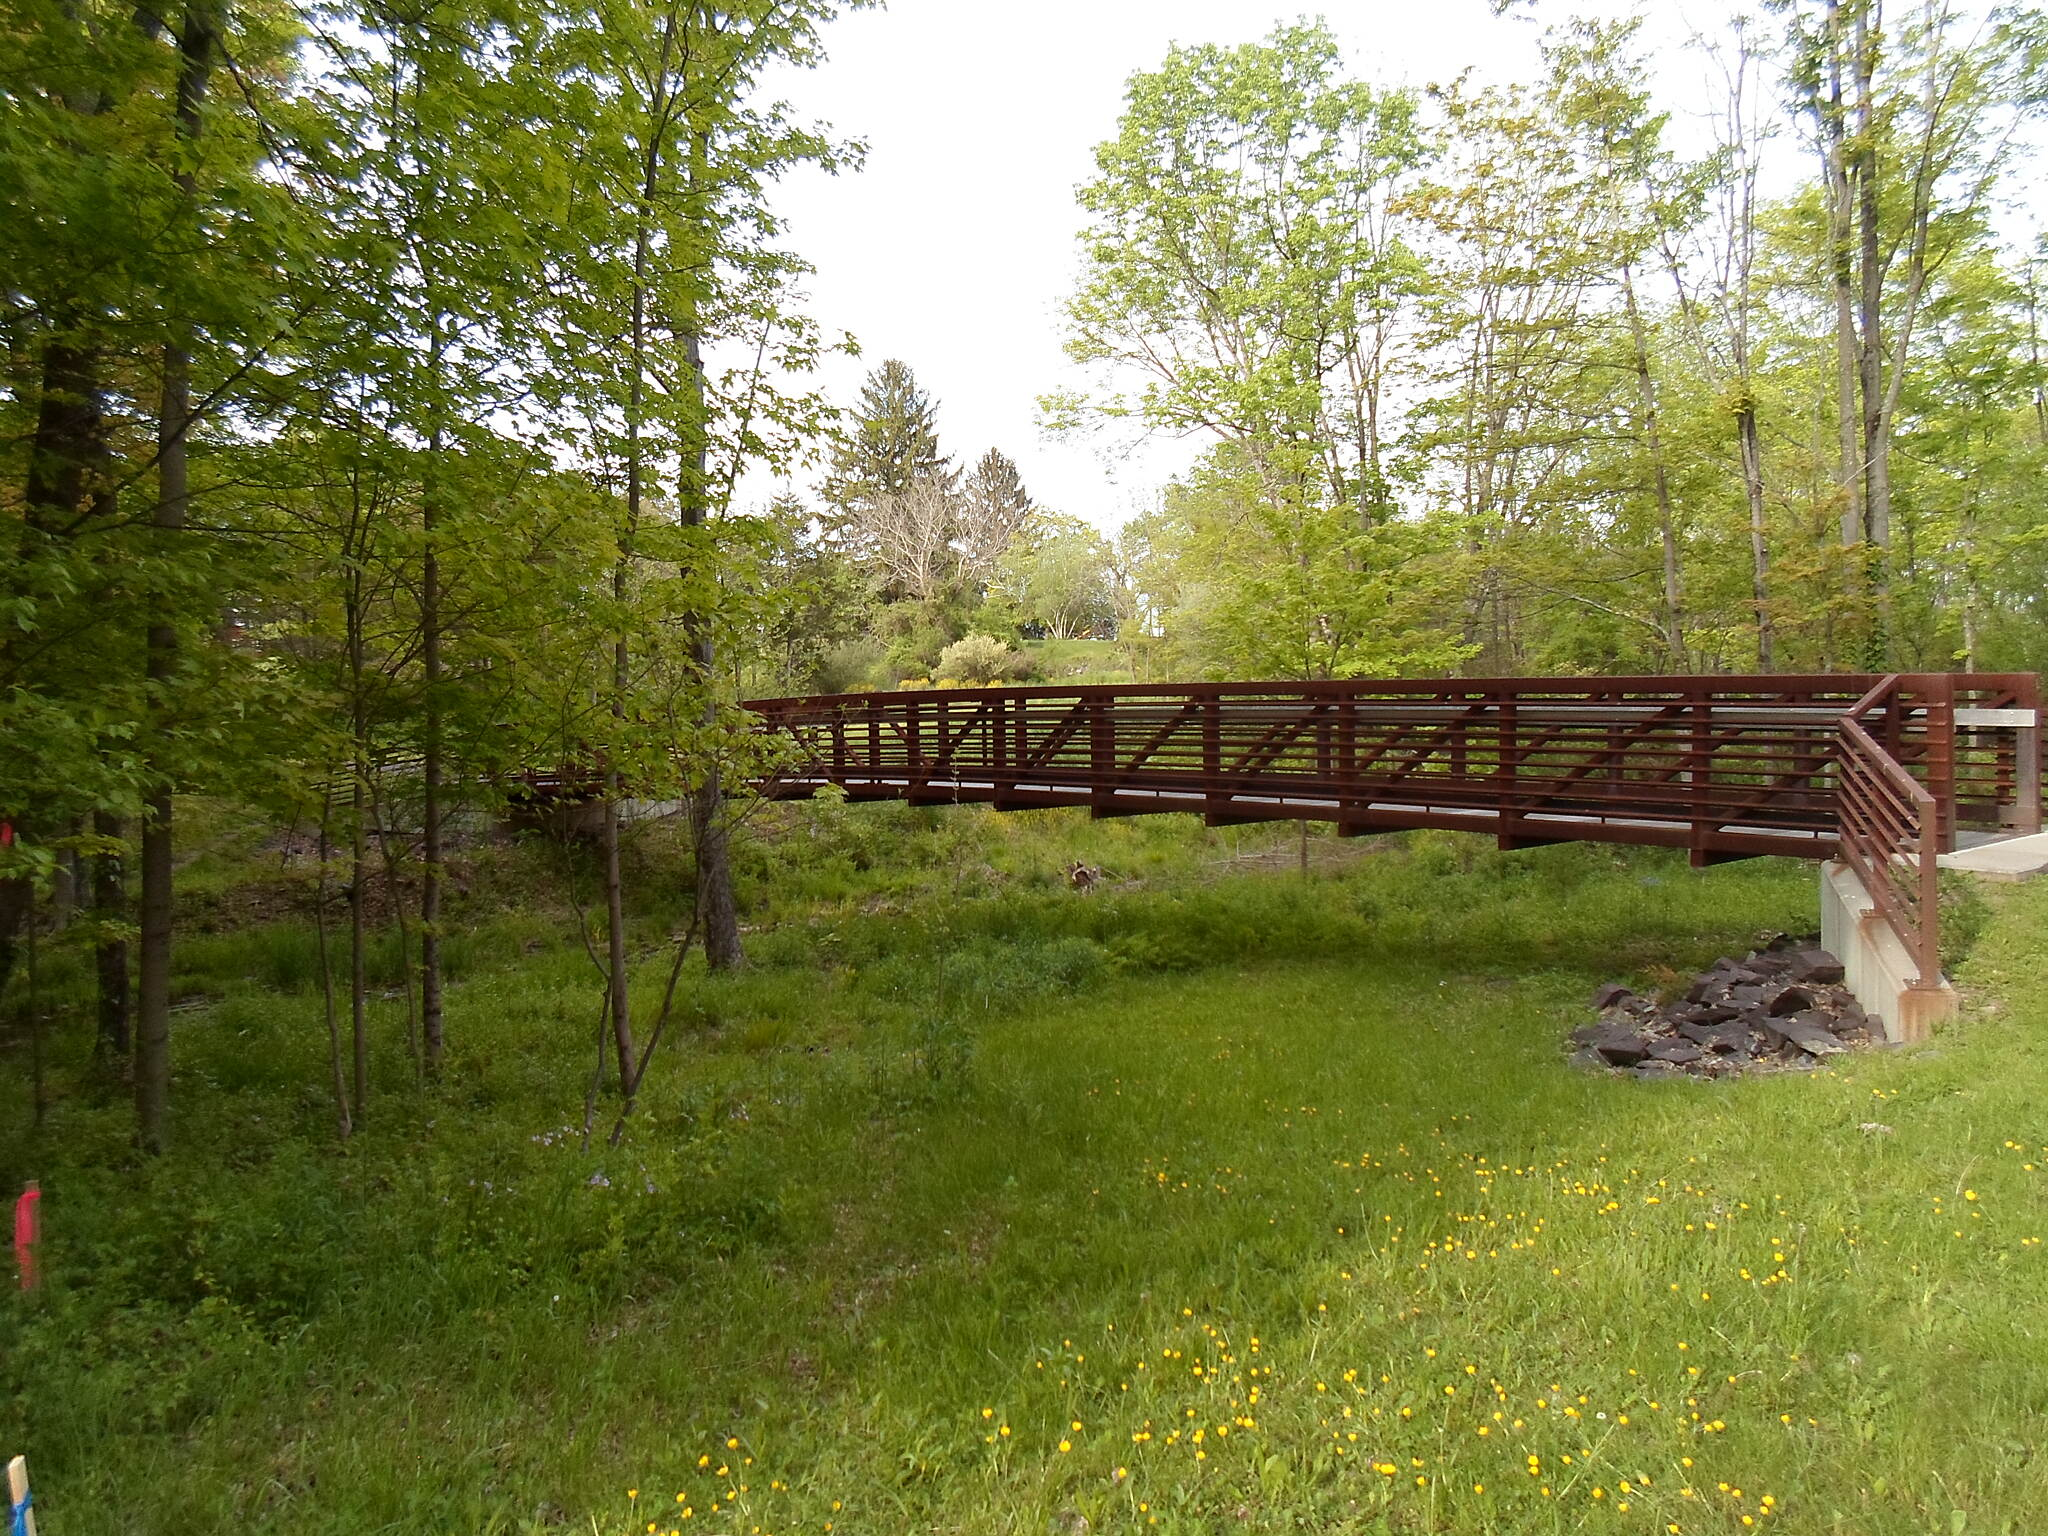 Unami Creek Trail Unami Creek Trail Footbridge over Unami Creek; this branch of the trail heads north toward a nearby development and connects to a nearby park.